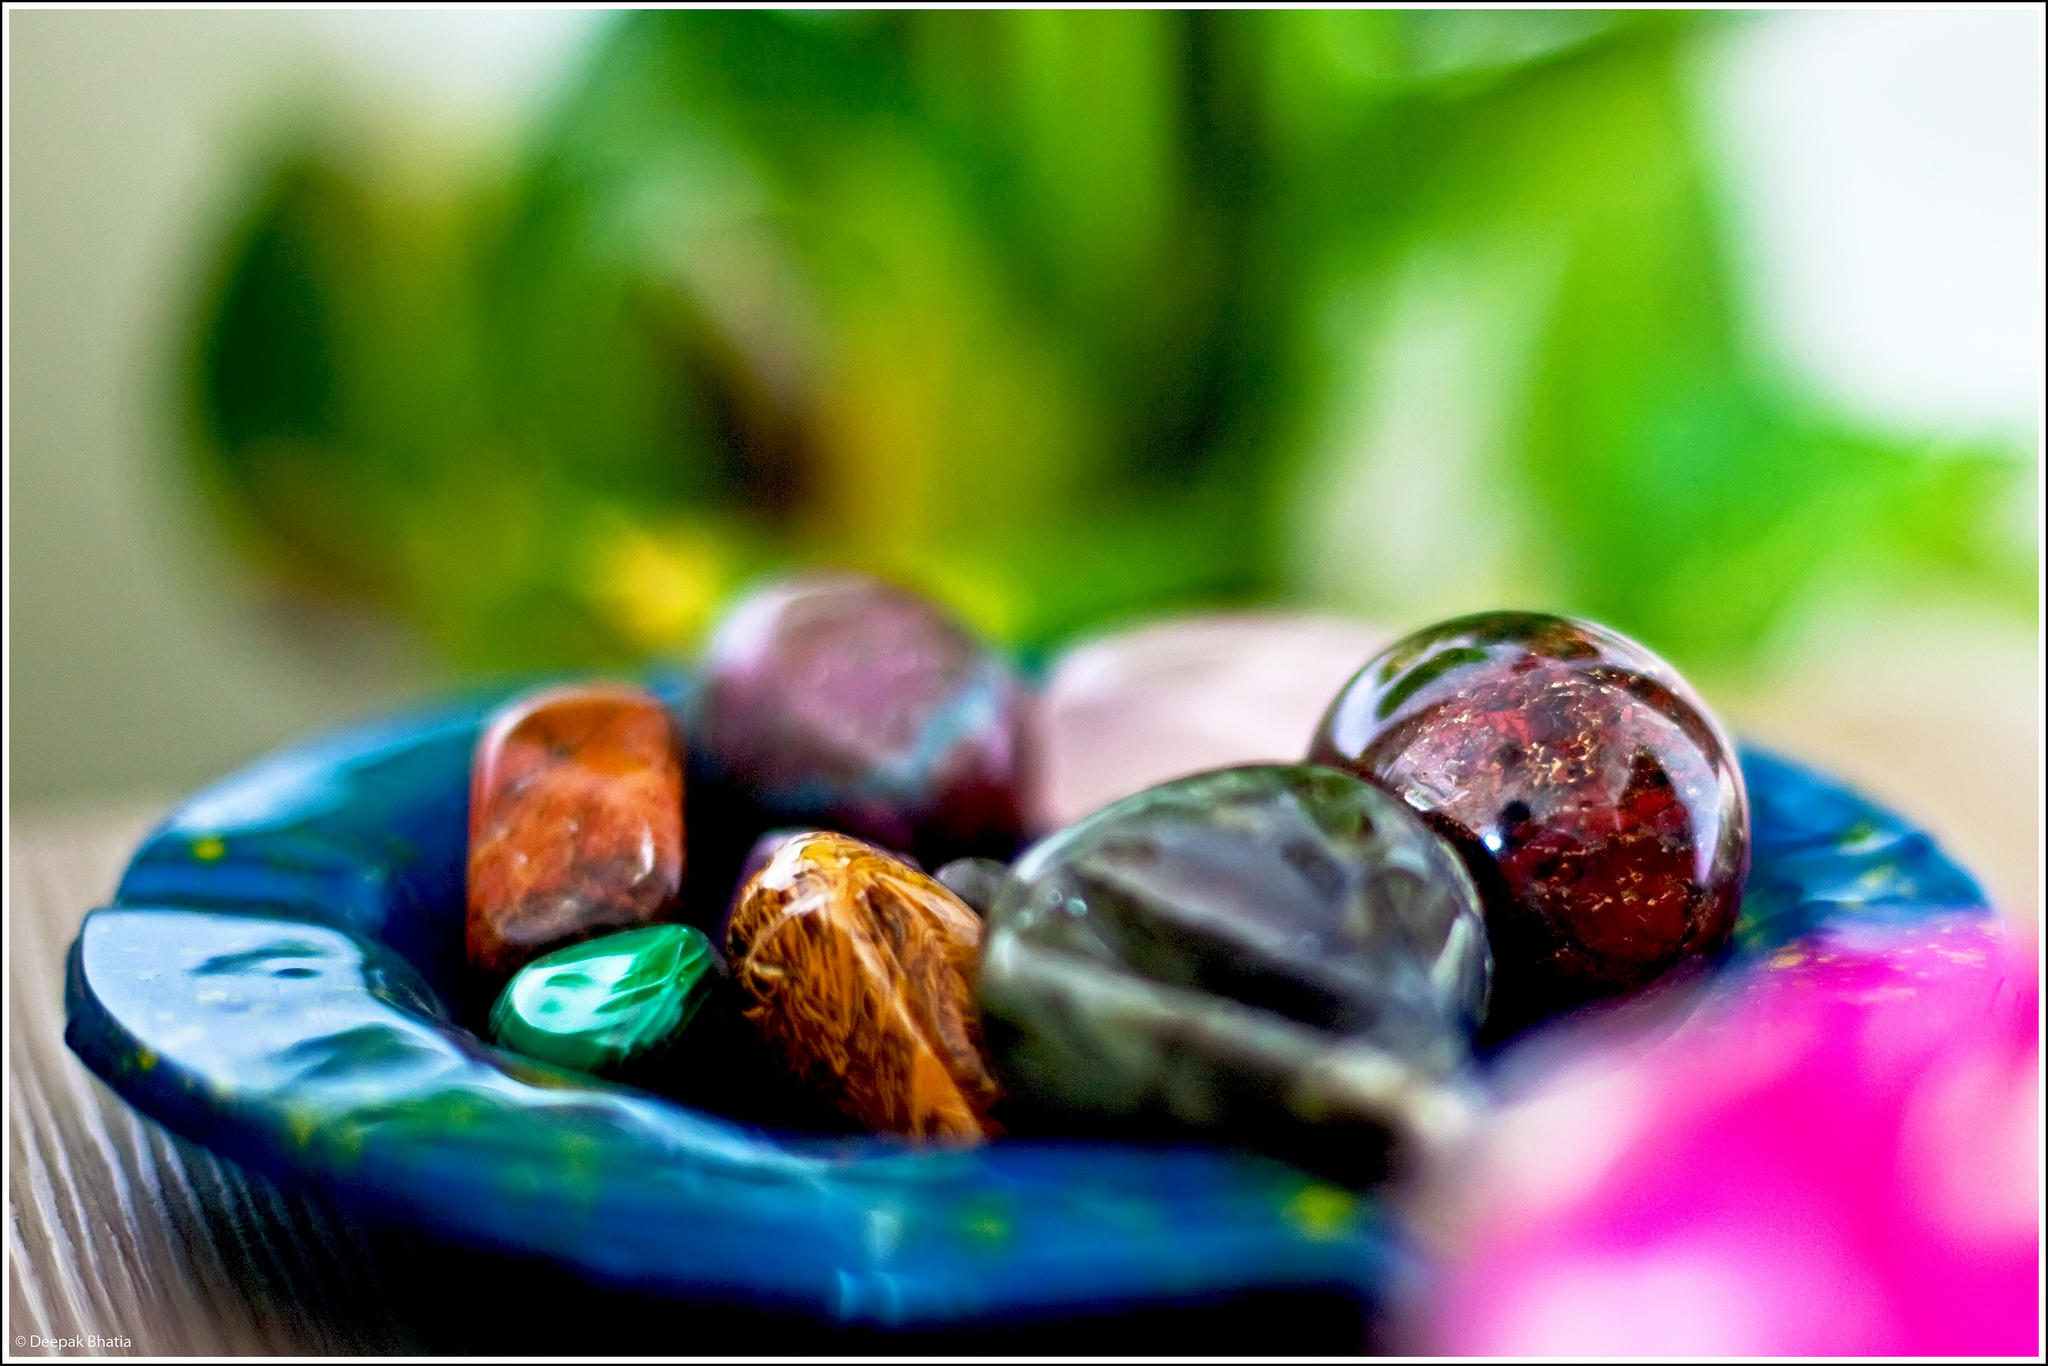 Can gemstones really heal?